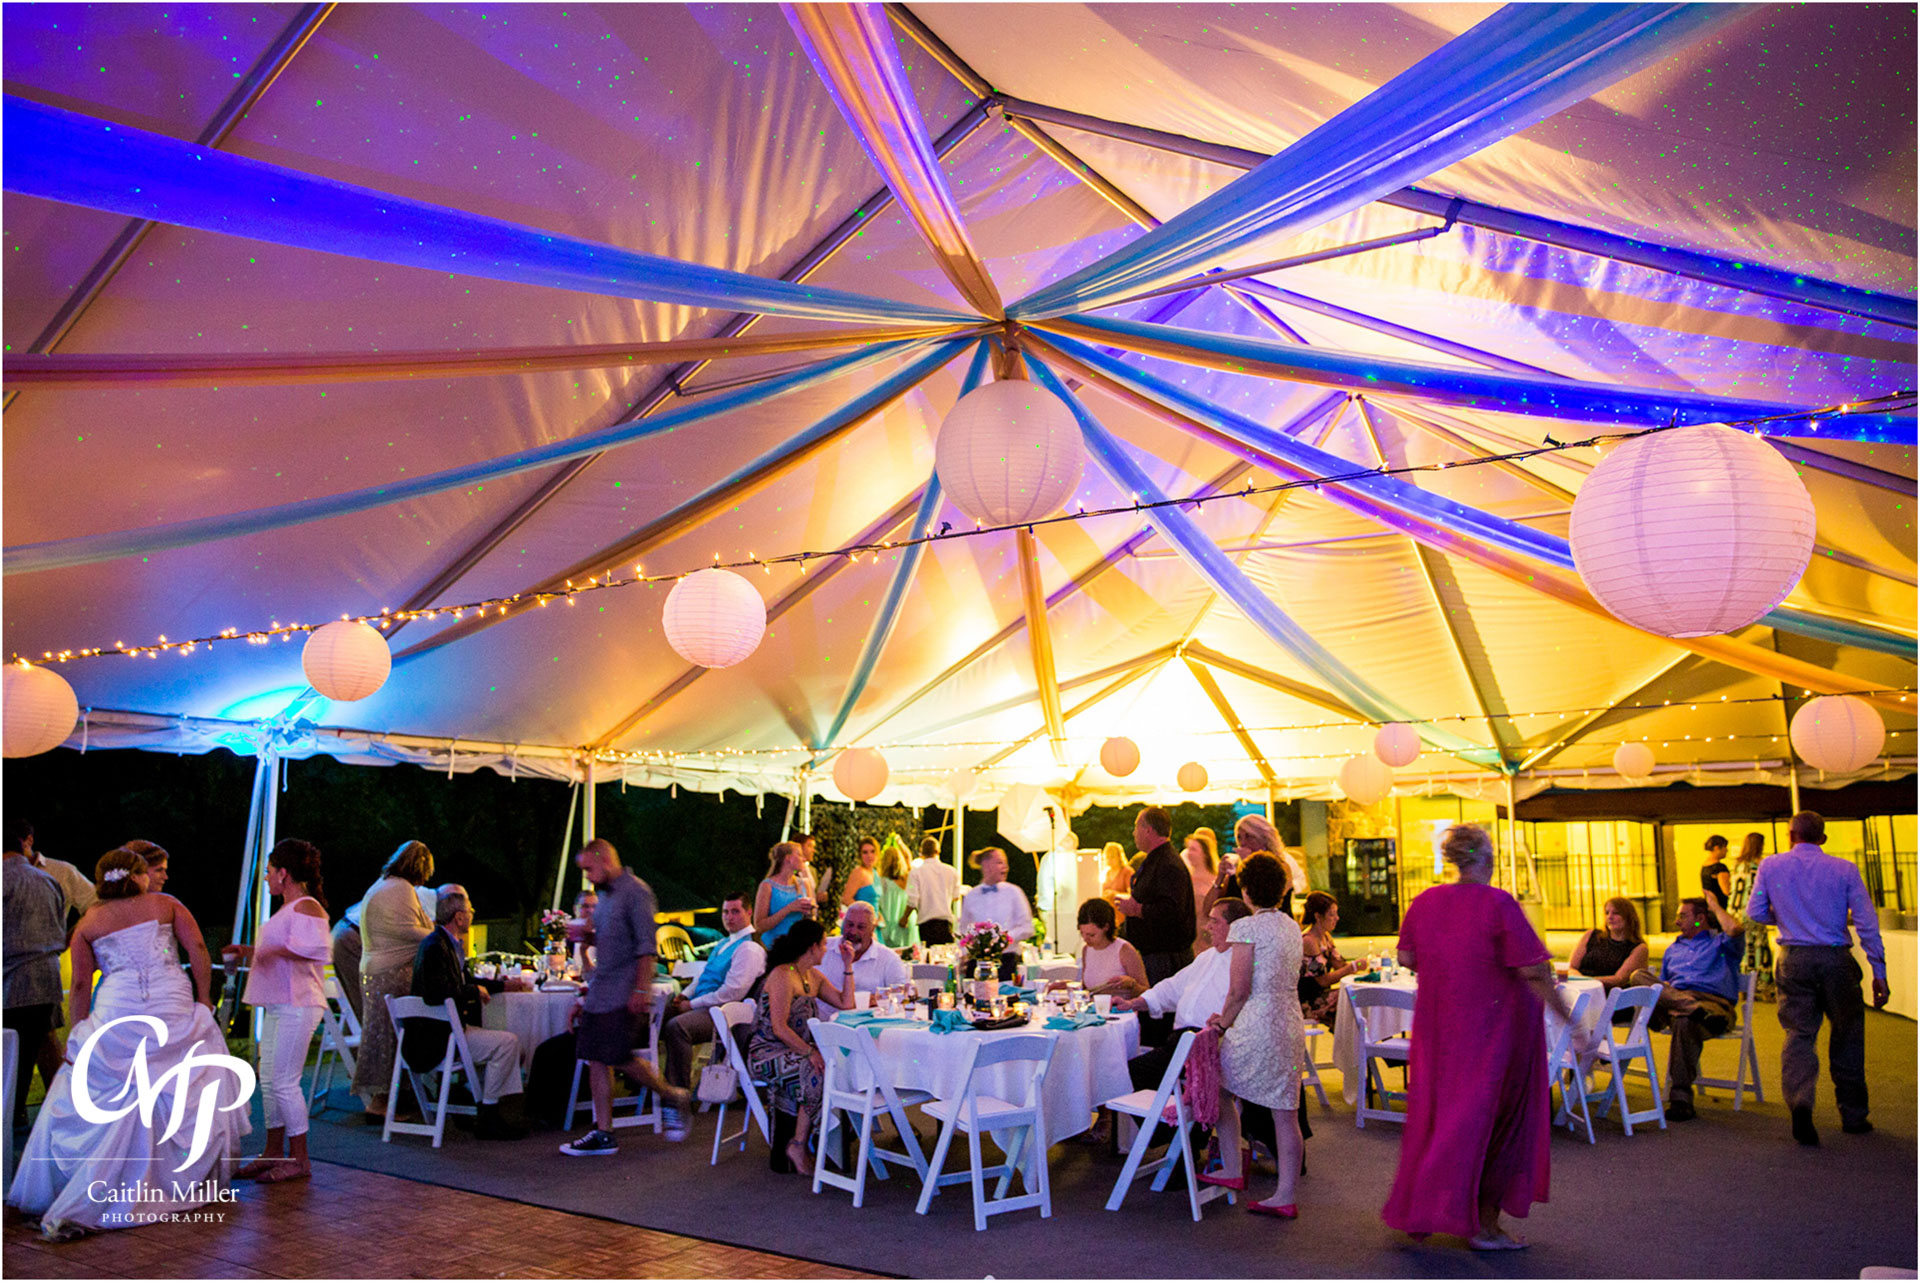 rega-35.jpg from Alicia and Desmond's Lake George wedding at Dunham's Bay Resort in Lake George, NY by Saratoga Wedding Photographer Caitlin Miller Photography. Lake George Wedding Photographer. Stamford wedding photographer. Albany wedding photographer. Greenwich Wedding Photographer. Saratoga Wedding Photographer